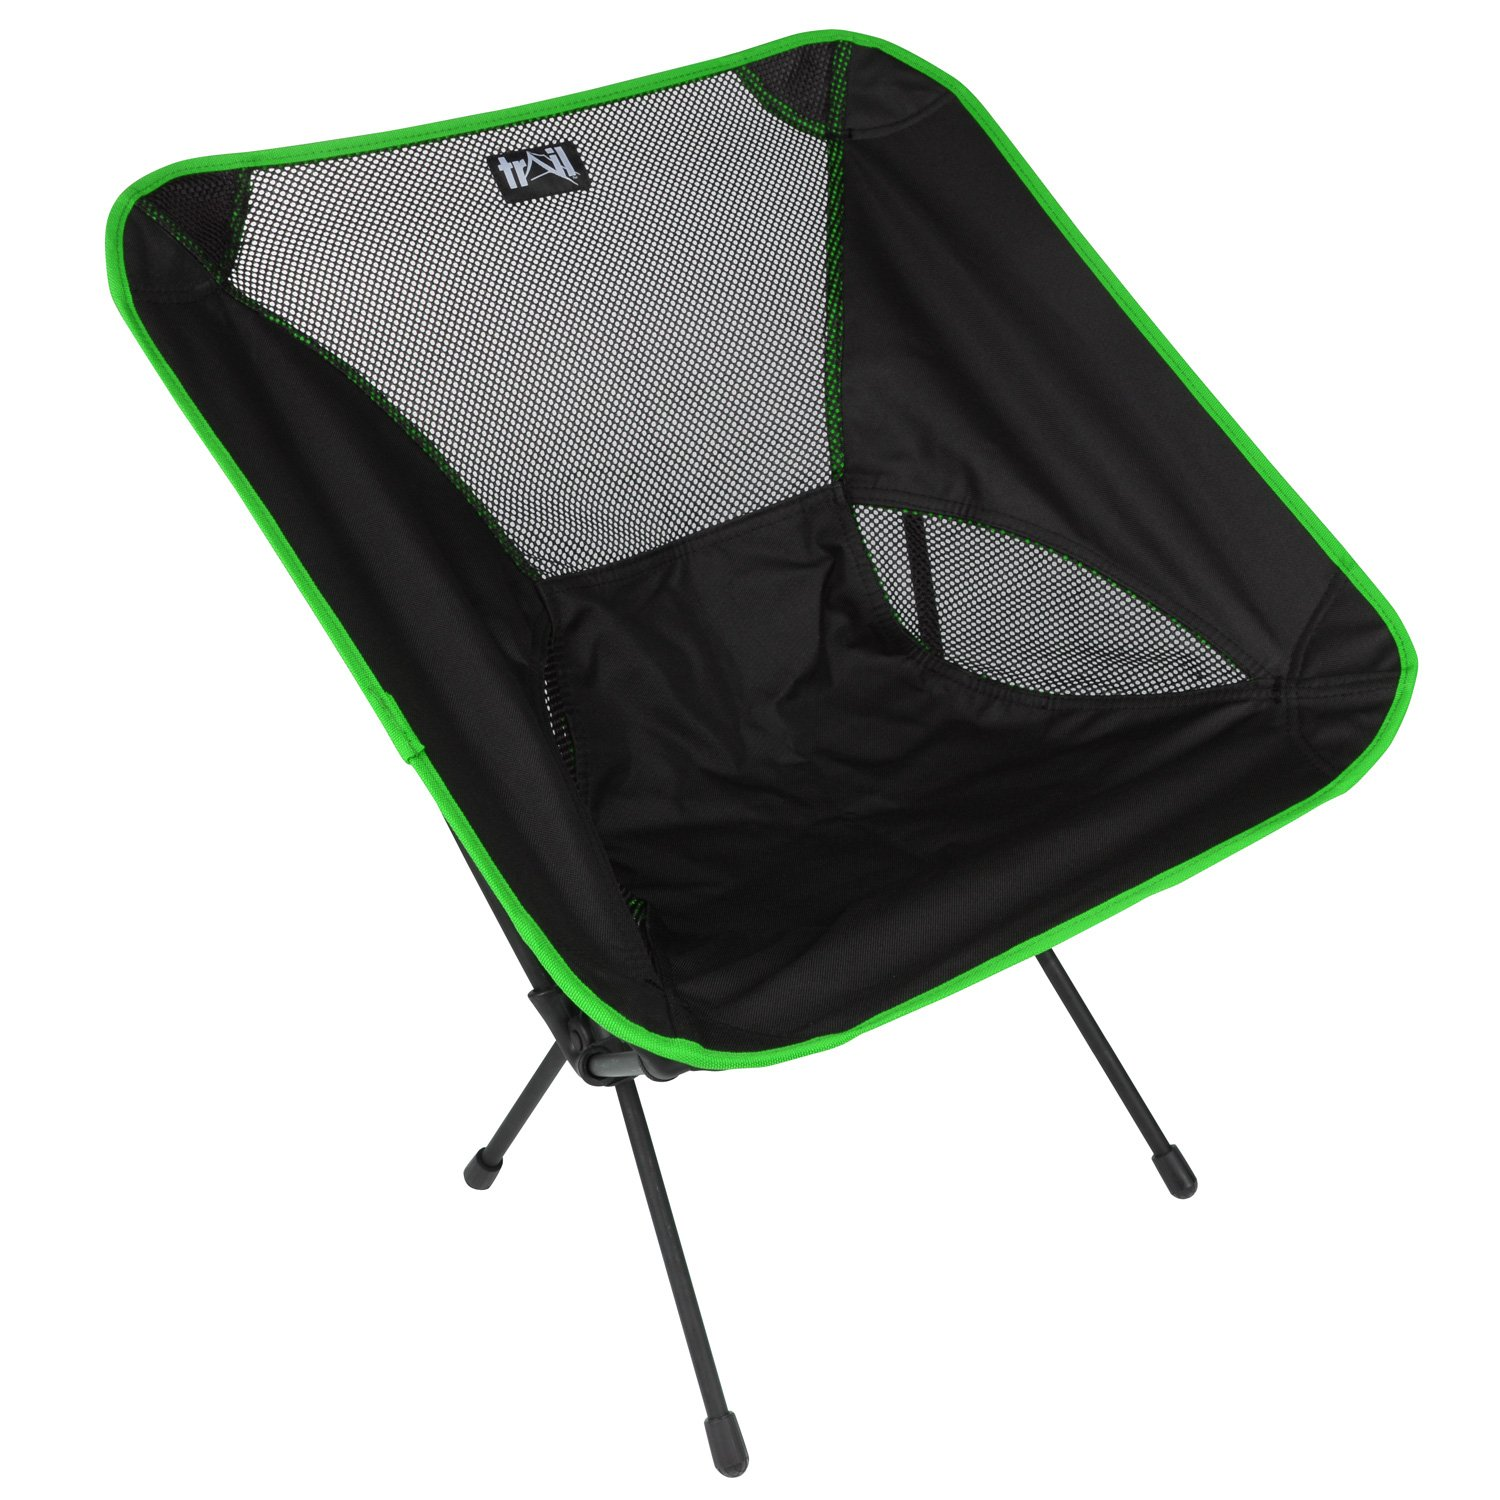 Lightweight Folding Camping Chair Portable Outdoor Fishing Seat